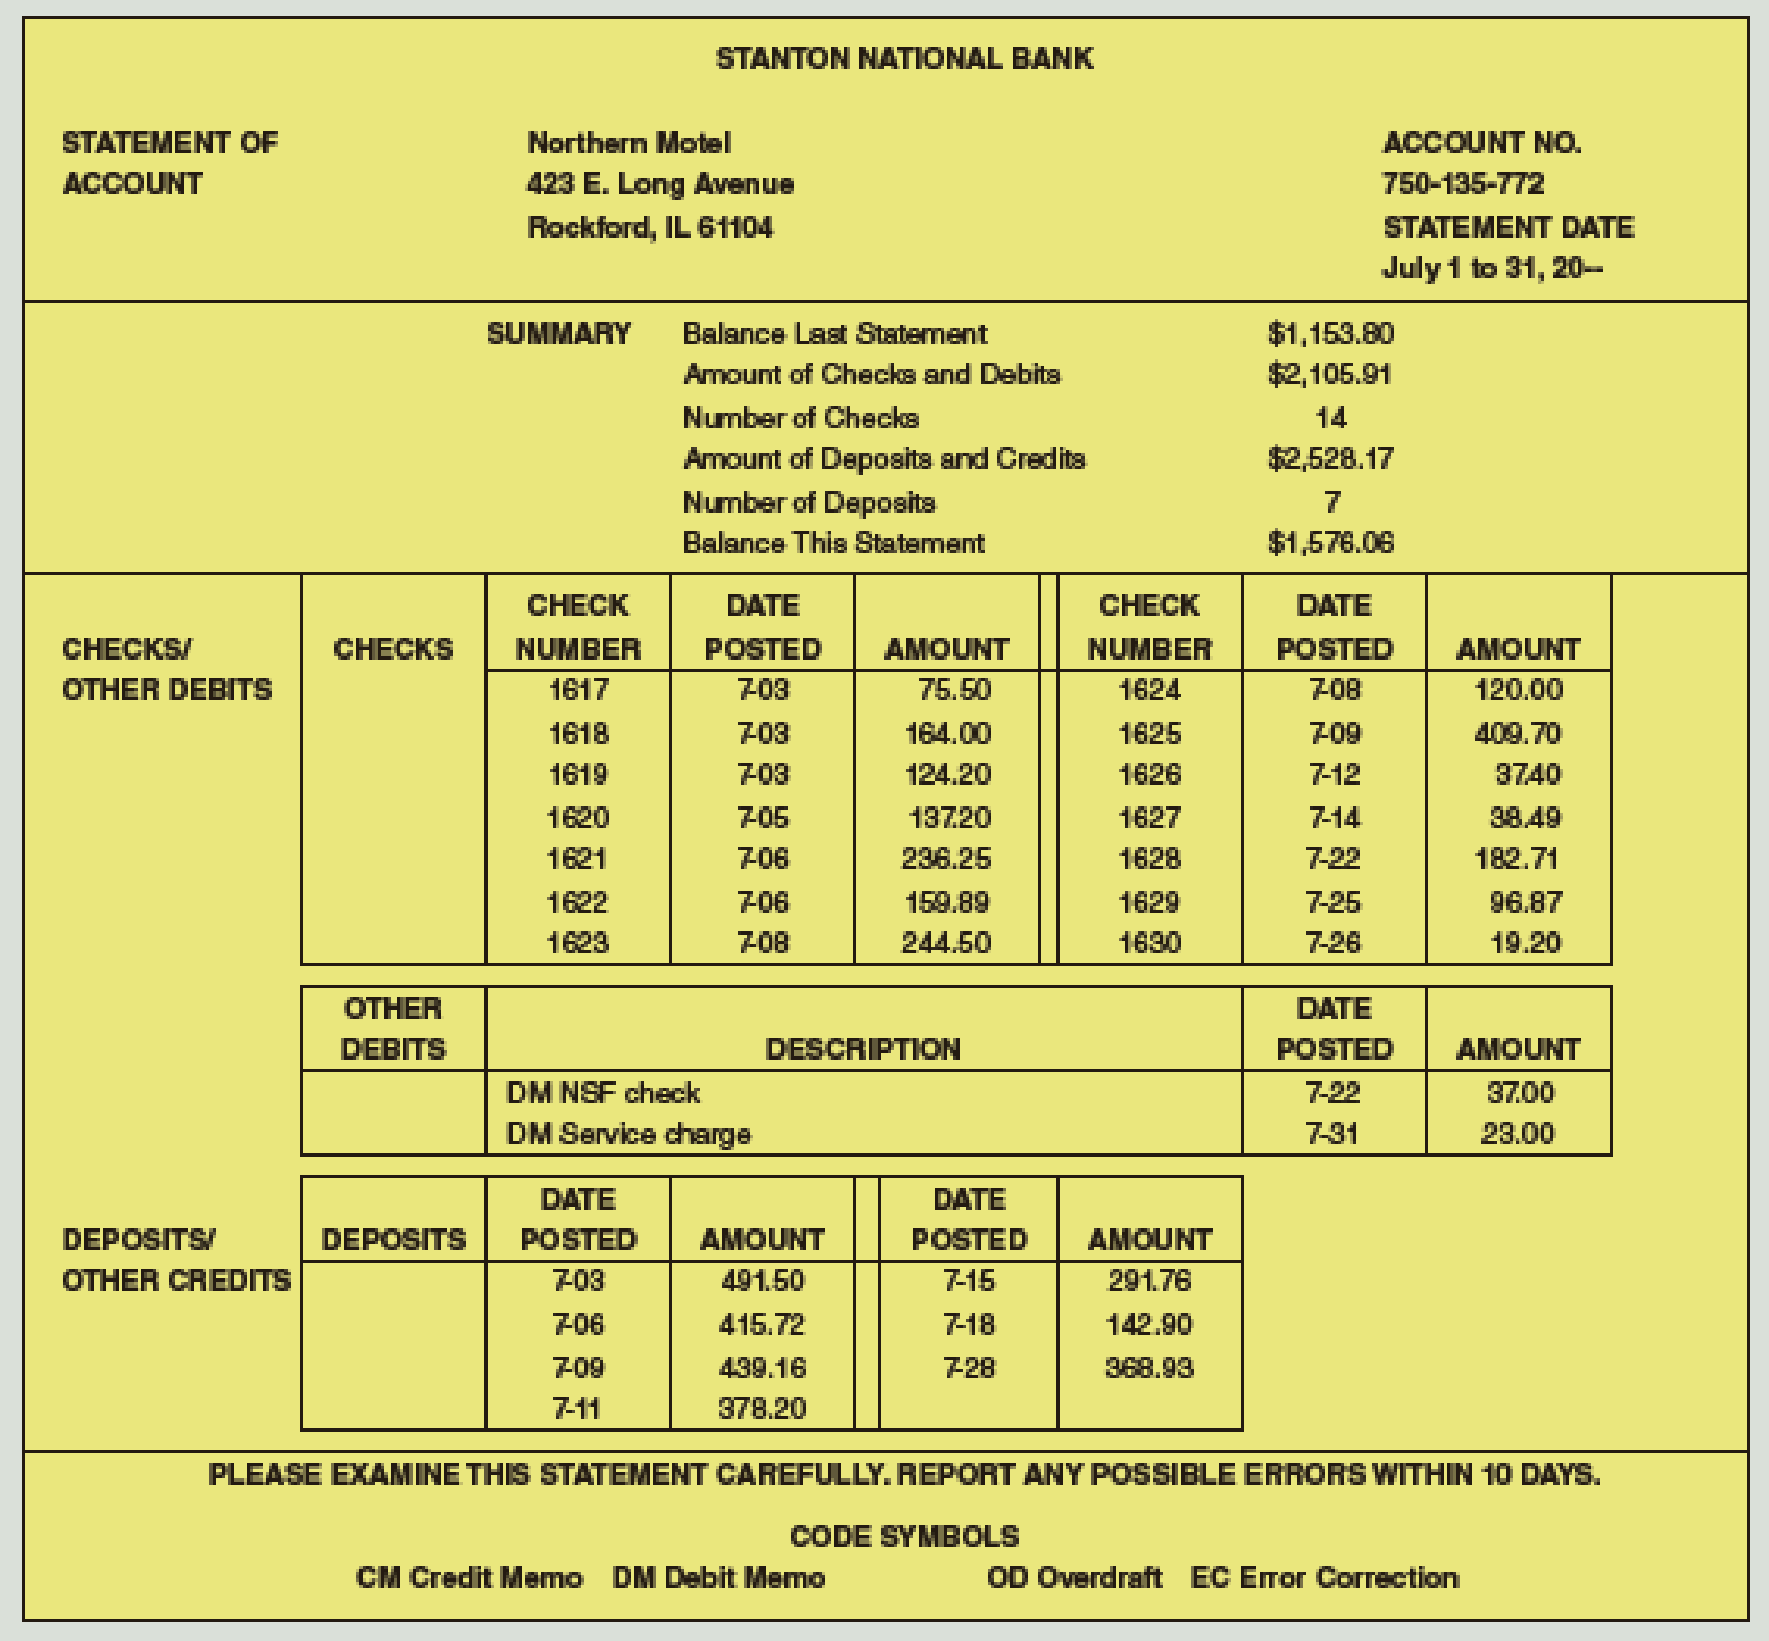 Chapter 6, Problem 4PB, On August 2, Northern Motel receives its bank statement (shown on the next page). The company